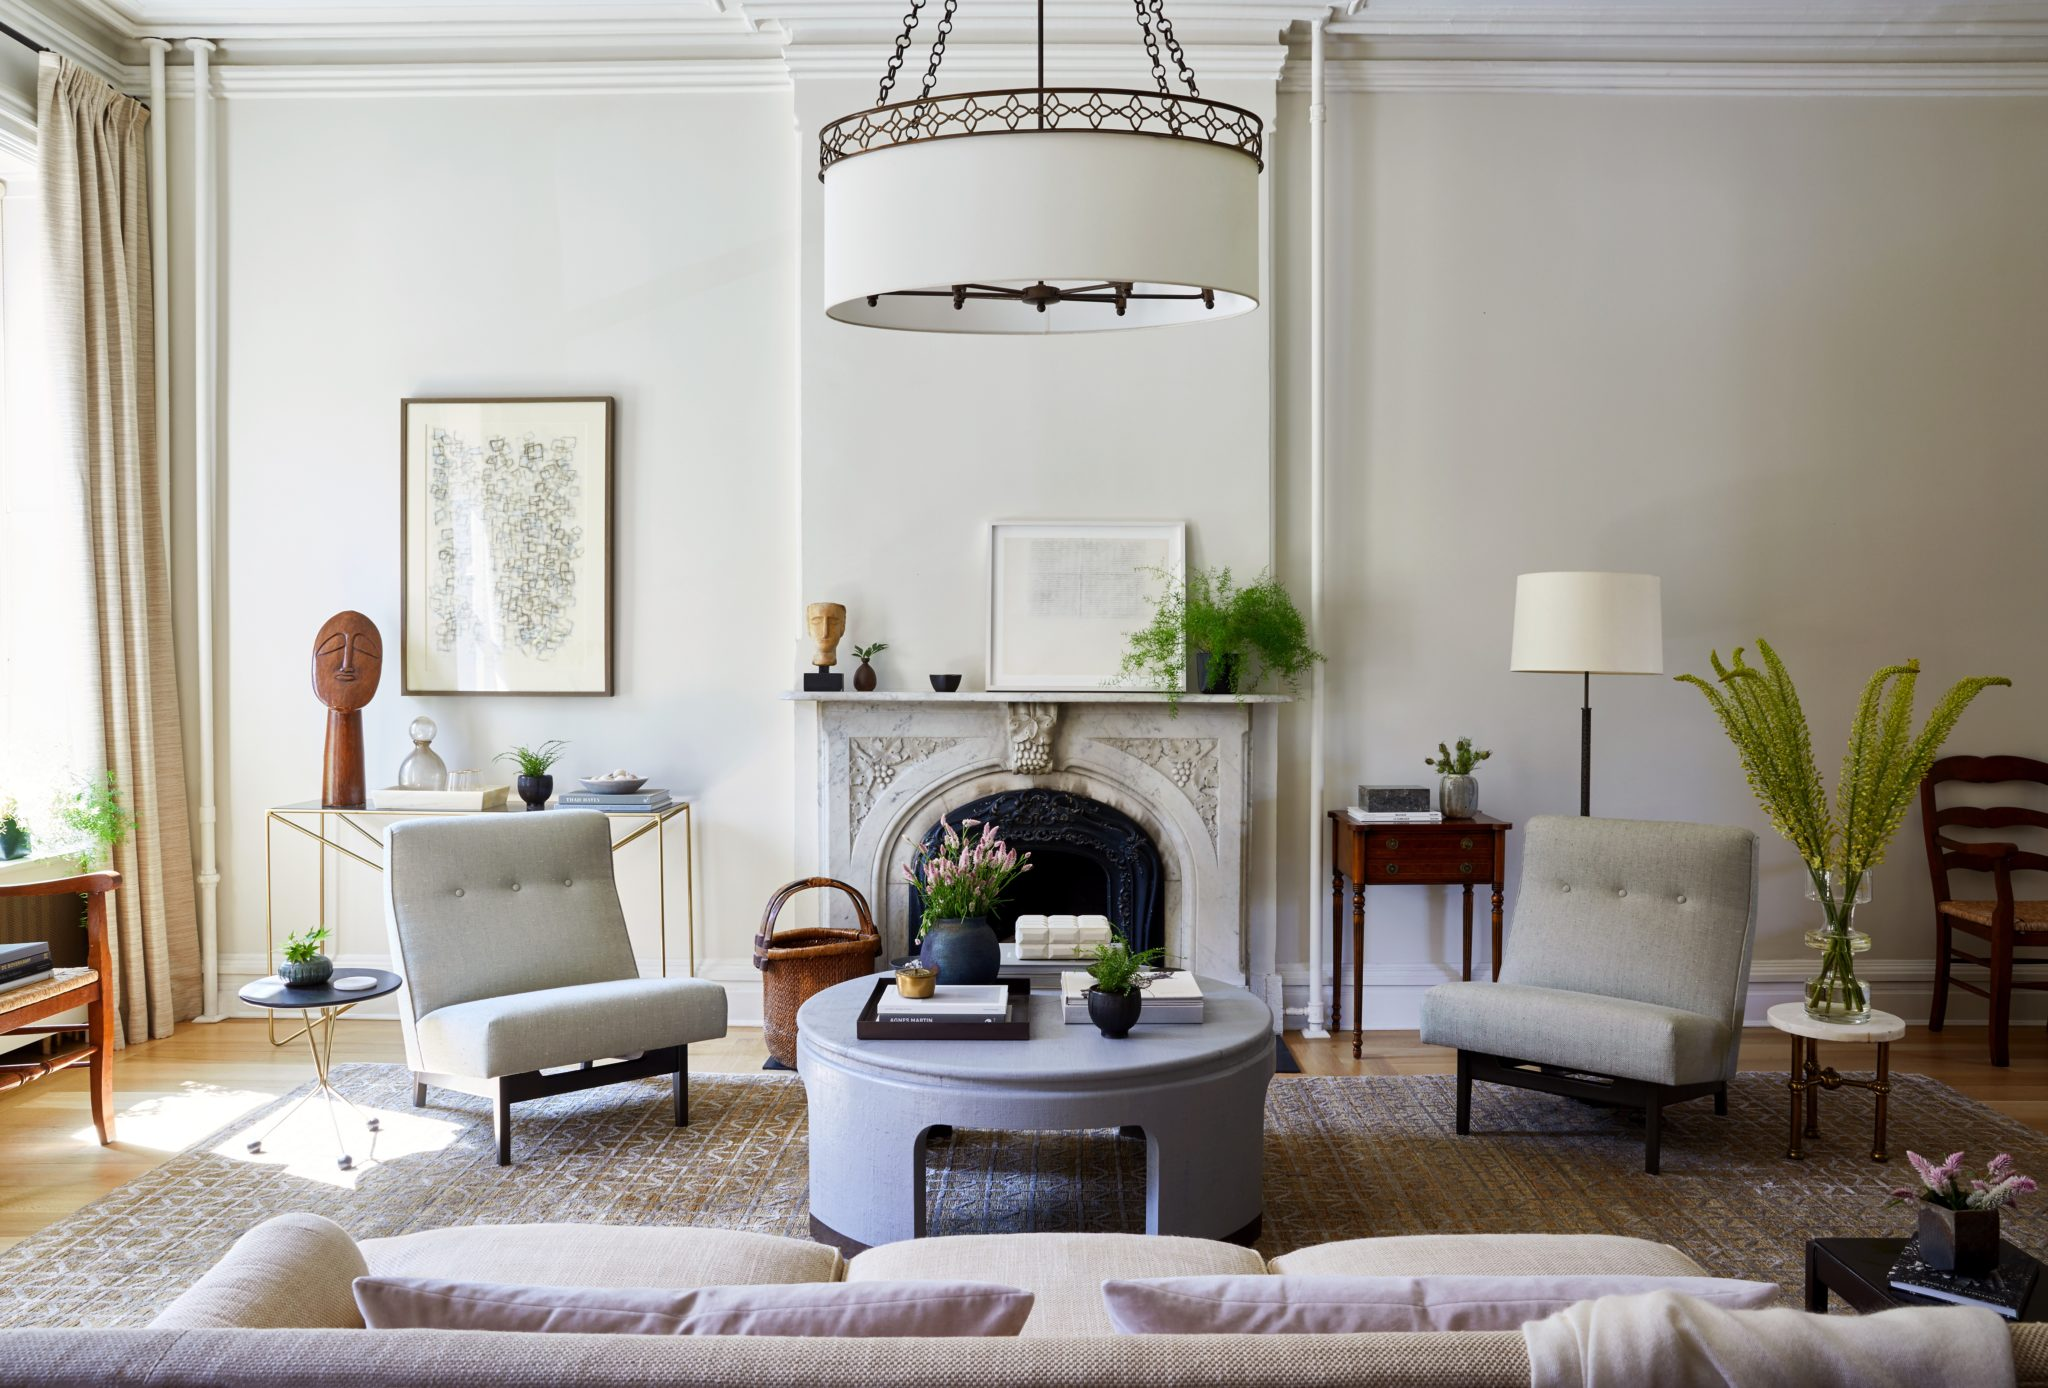 An engraved fireplace references the home's 100-year history. The circular coffee table in the center of the room was a choice find from Chairish; the textured table upholstered in linen was originally crafted in the style of 20th-century German product designer Karl Springer. On either side of the fireplace, vintage chairs by Jens Risom, the Danish master of Midcentury modern design, are upholstered in Toile Chenonceau fabric from Claremont. Draperies designed with Holly Hunt silk let in light from the large windows. Artworkby Heidi Kurko and Jean Wolf enhancethe beauty of the space, and the sofa and antique side table are the clients' own.